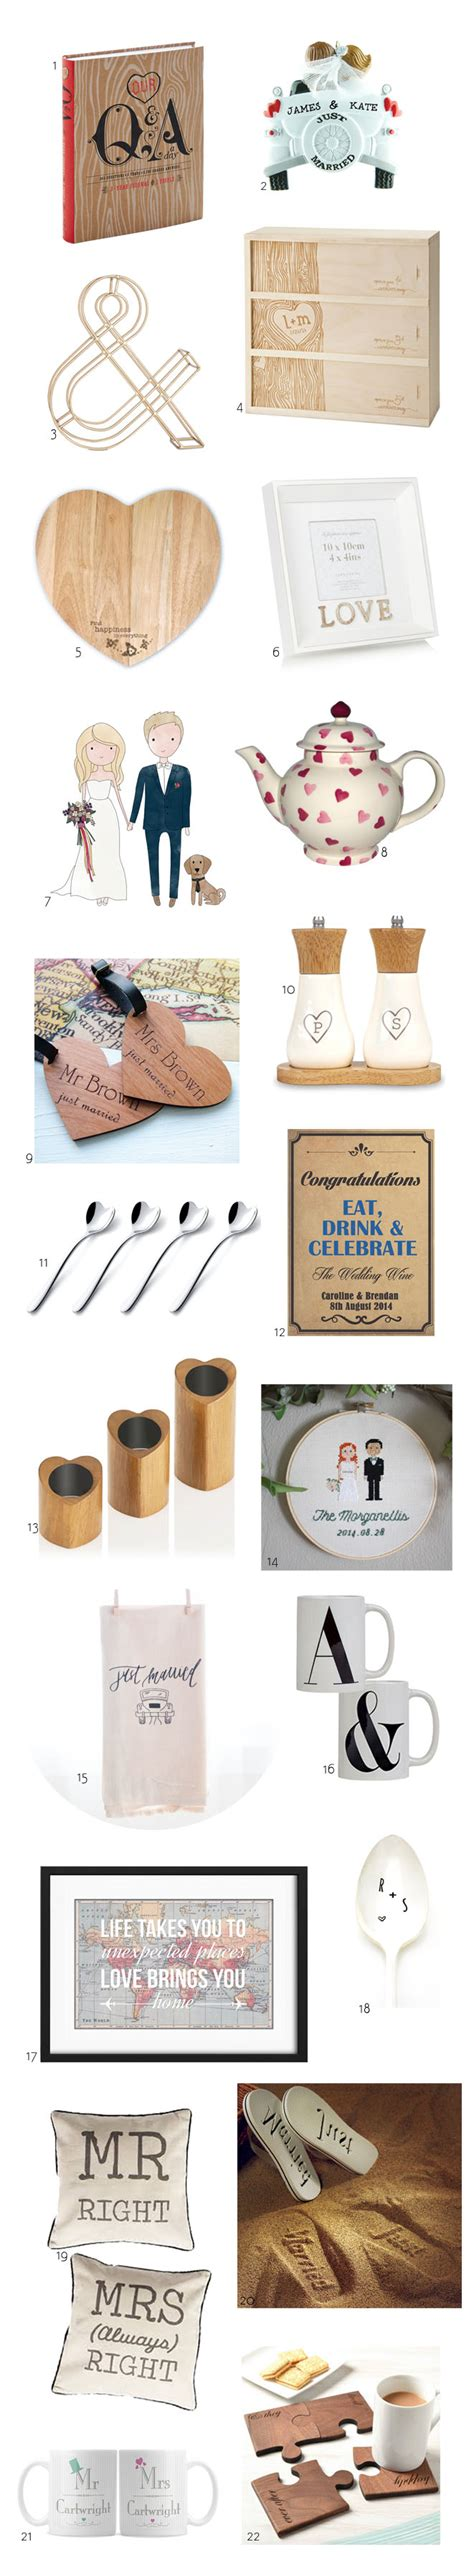 wedding gift ideas for the newlyweds 22 thoughtful gift ideas for newlyweds weddingsonline